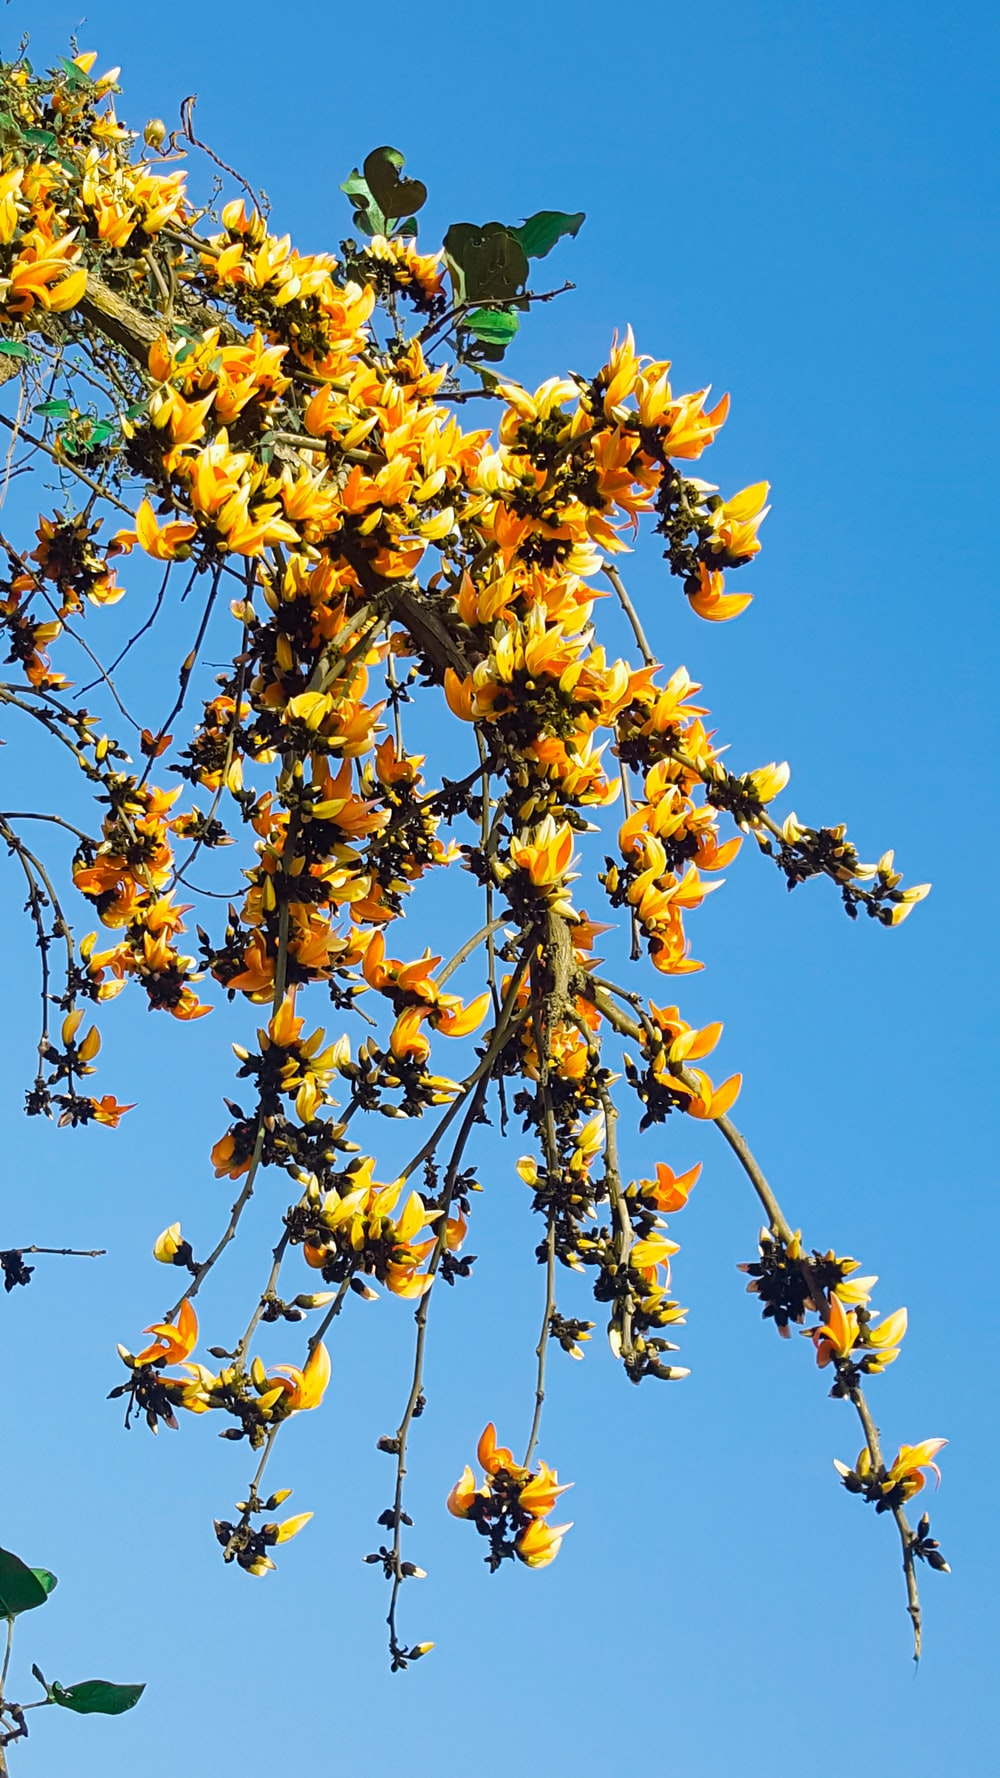 low angle photography of yellow-petaled flowers